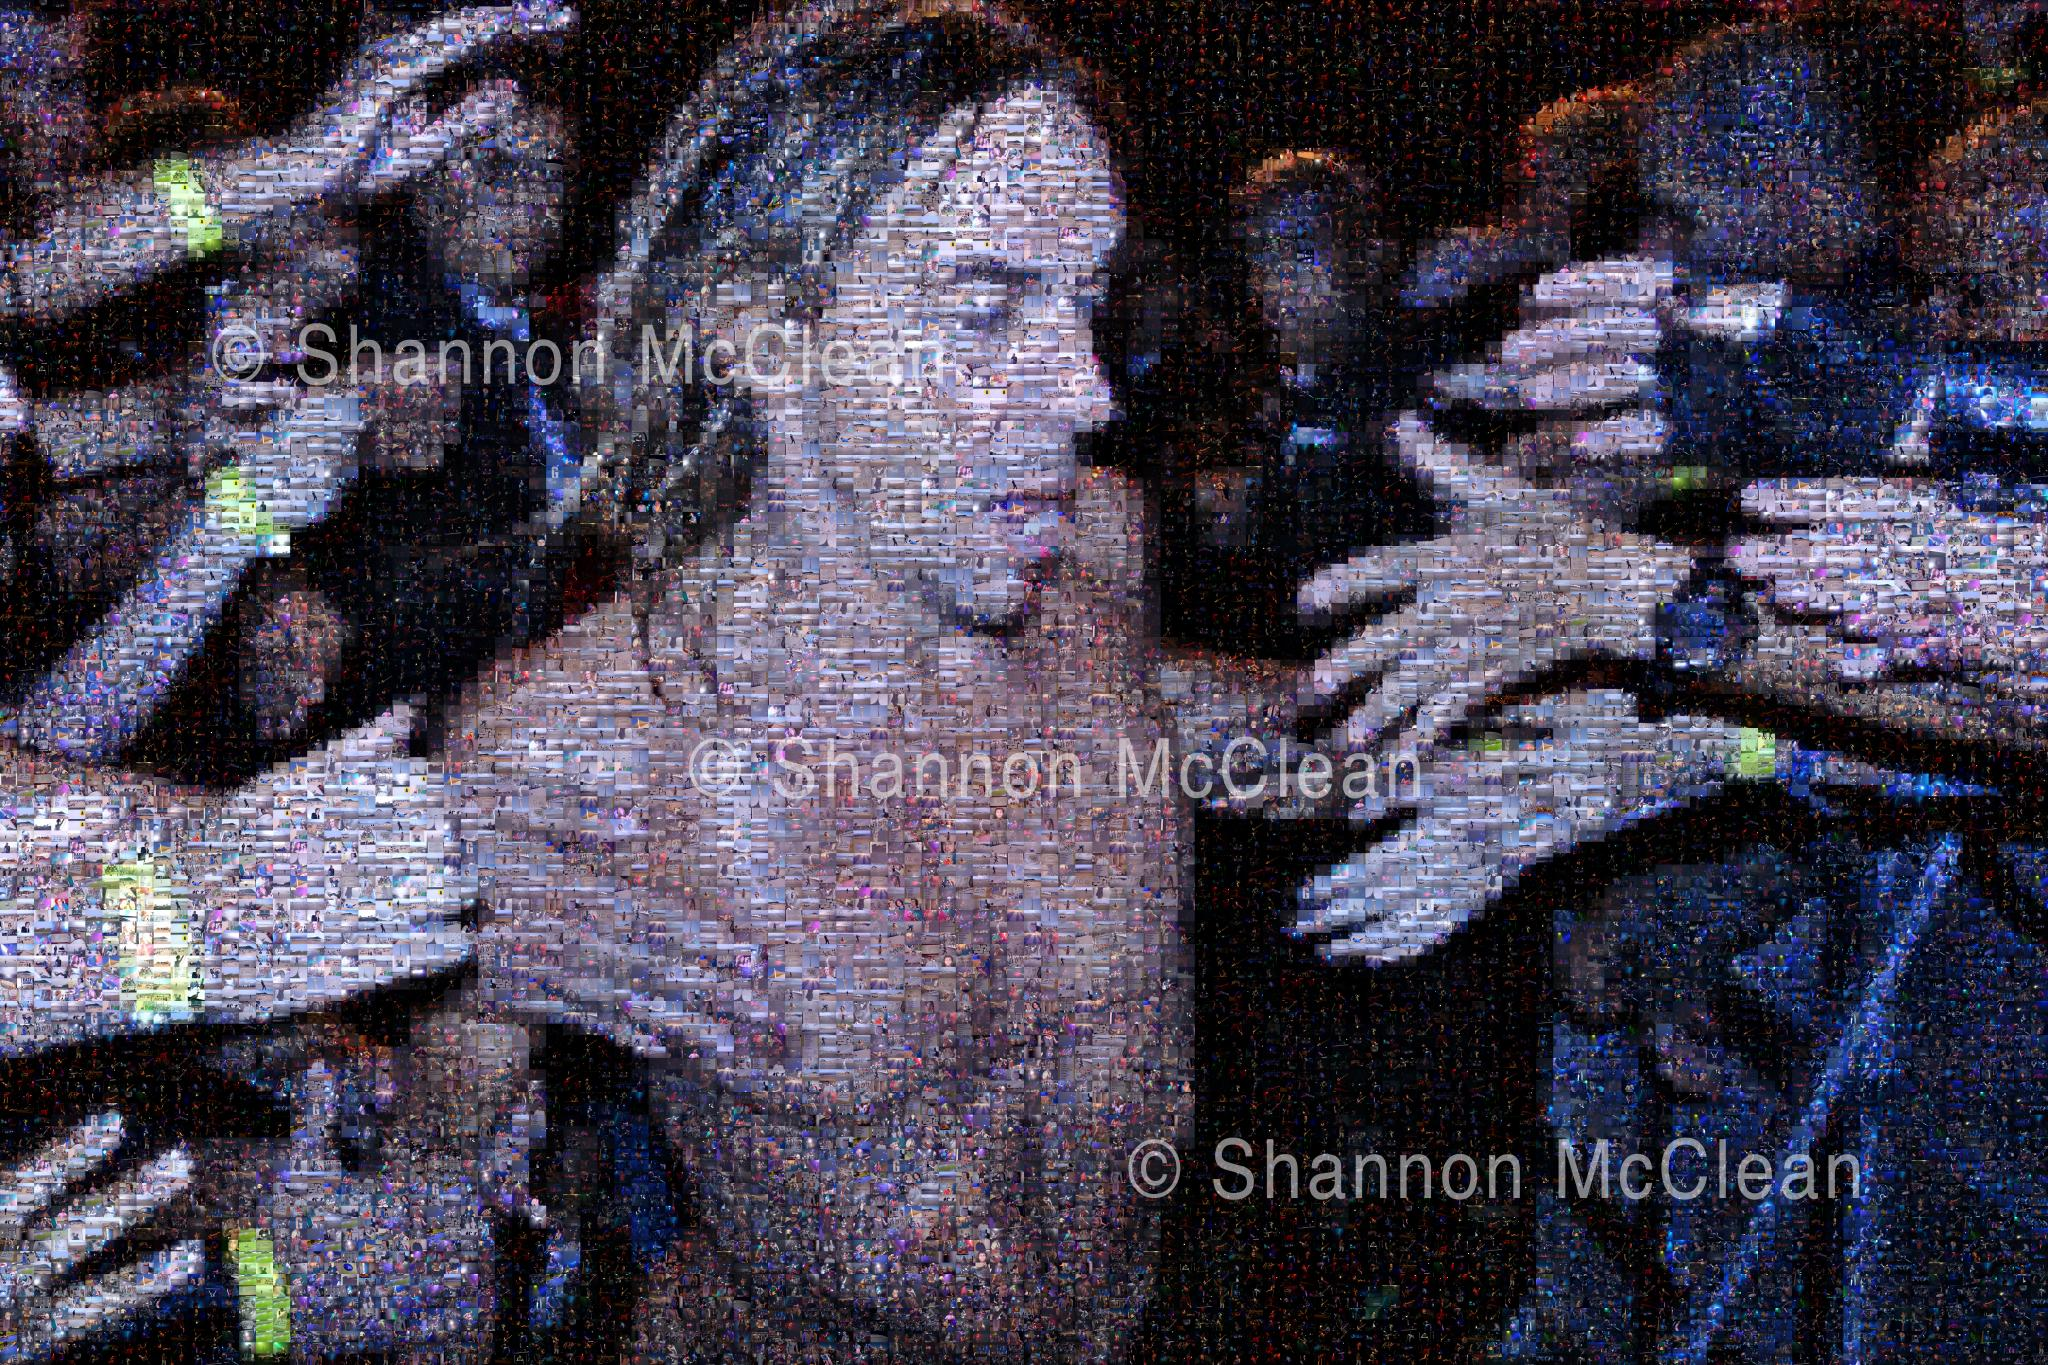 Iggy Pop Mosaic (ATP curated by Matt Groening). Made up of 8,100 images, including many contributed by fans over the ten years of the festival.